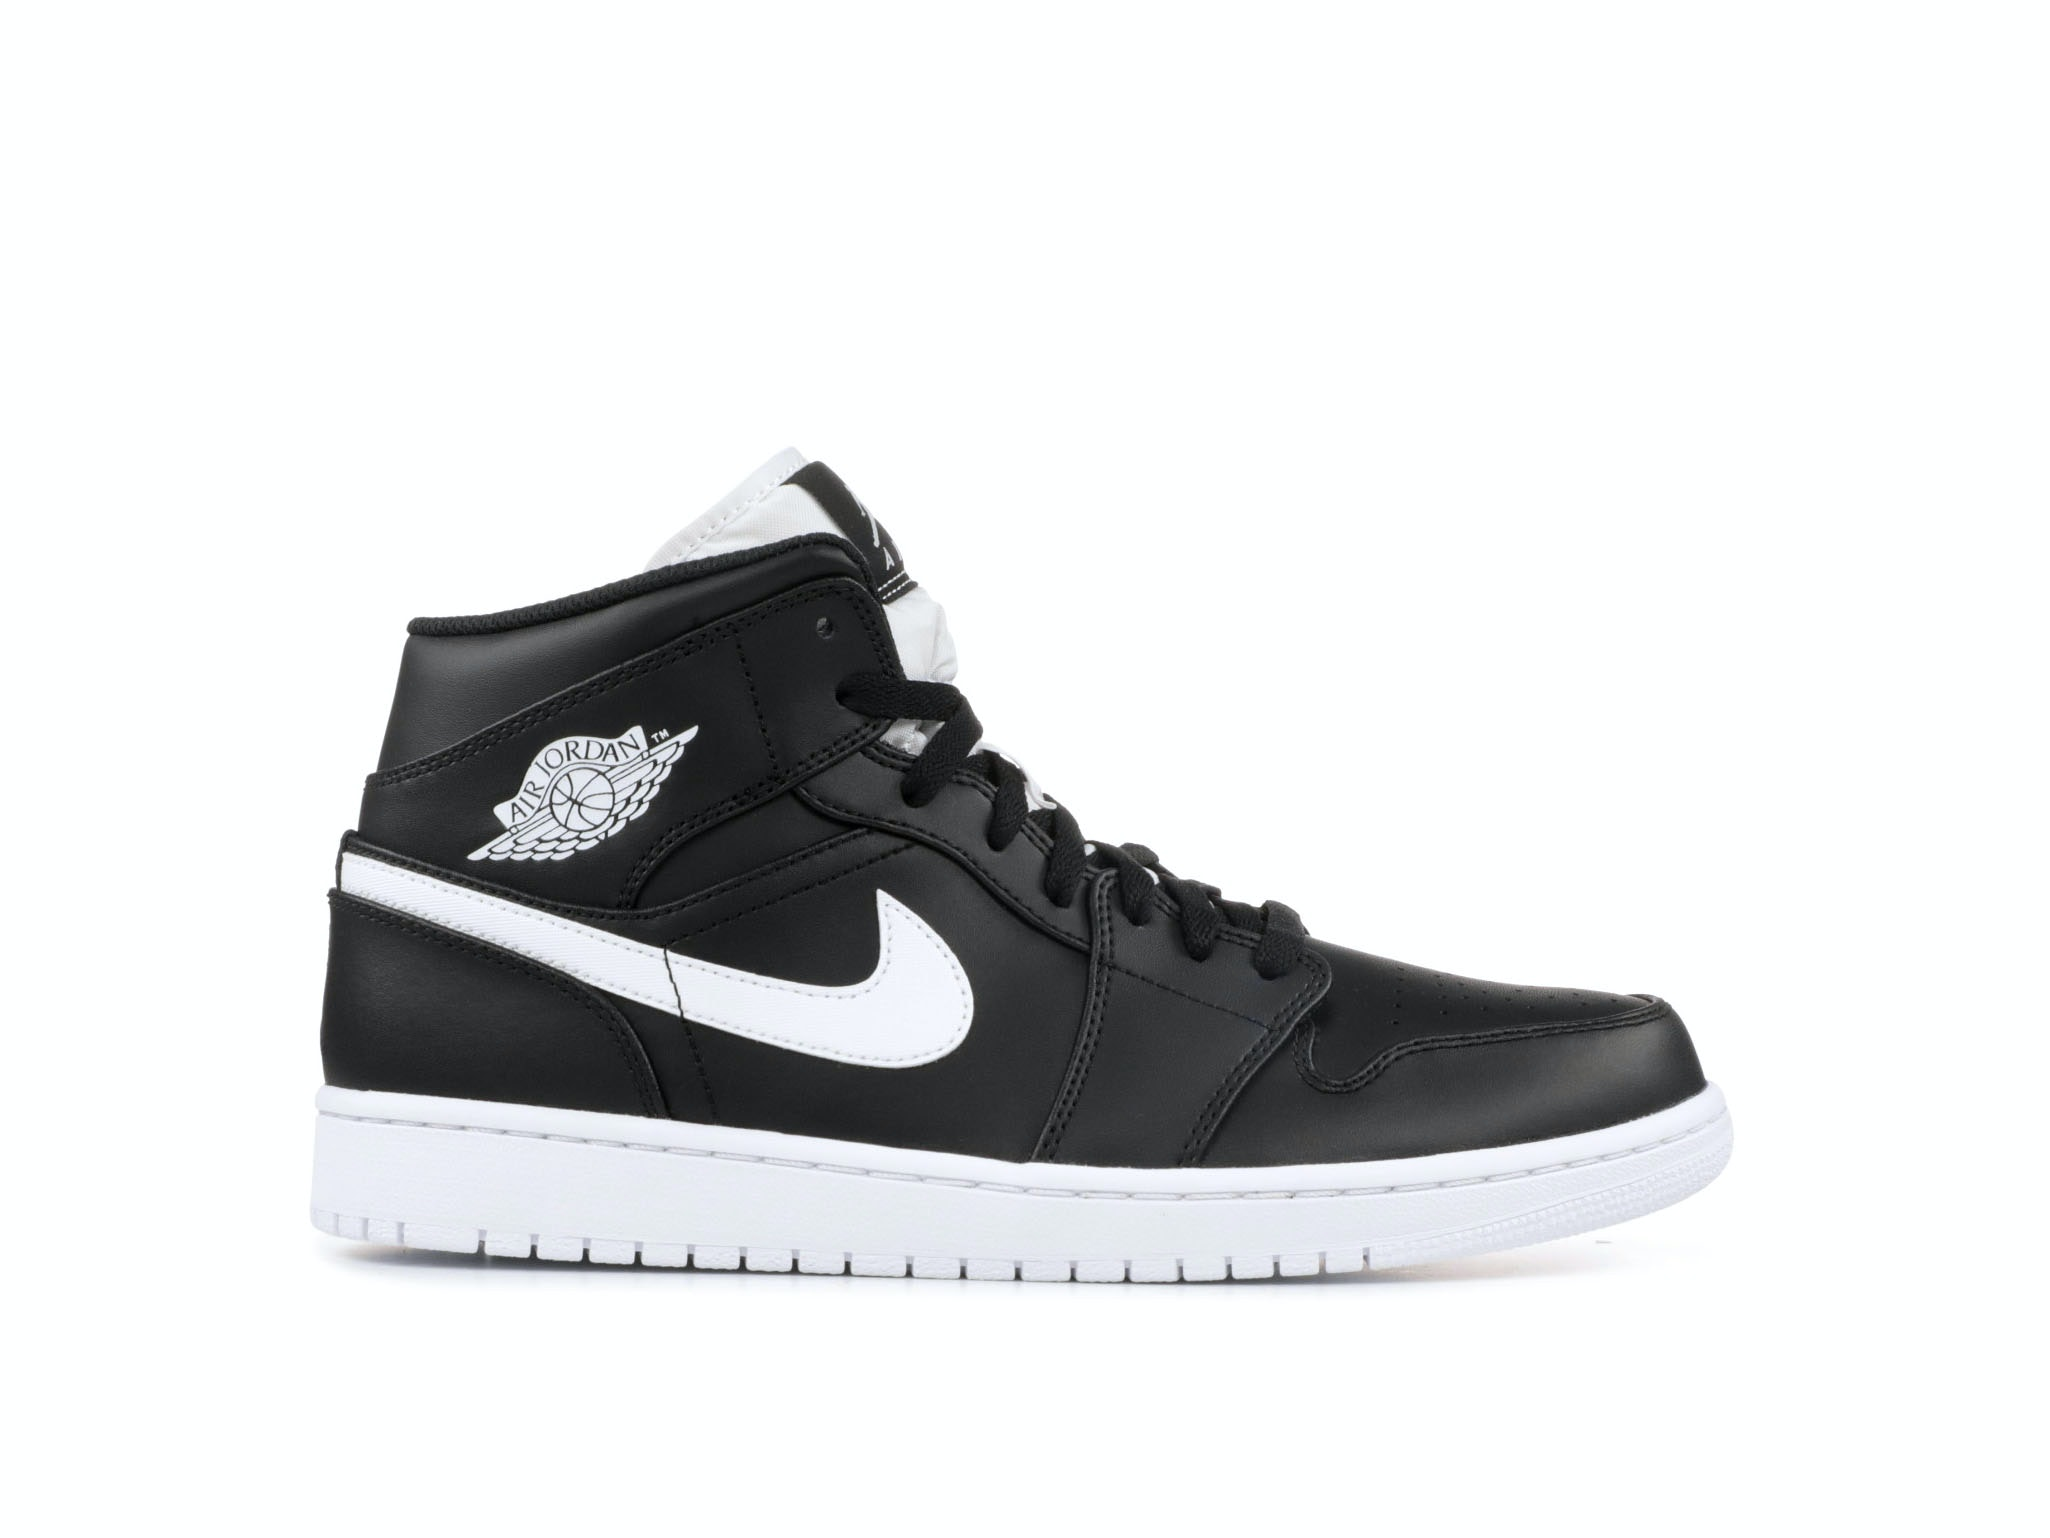 official photos 0237e 3fd5d Air Jordan 1 Retro Mid Black White